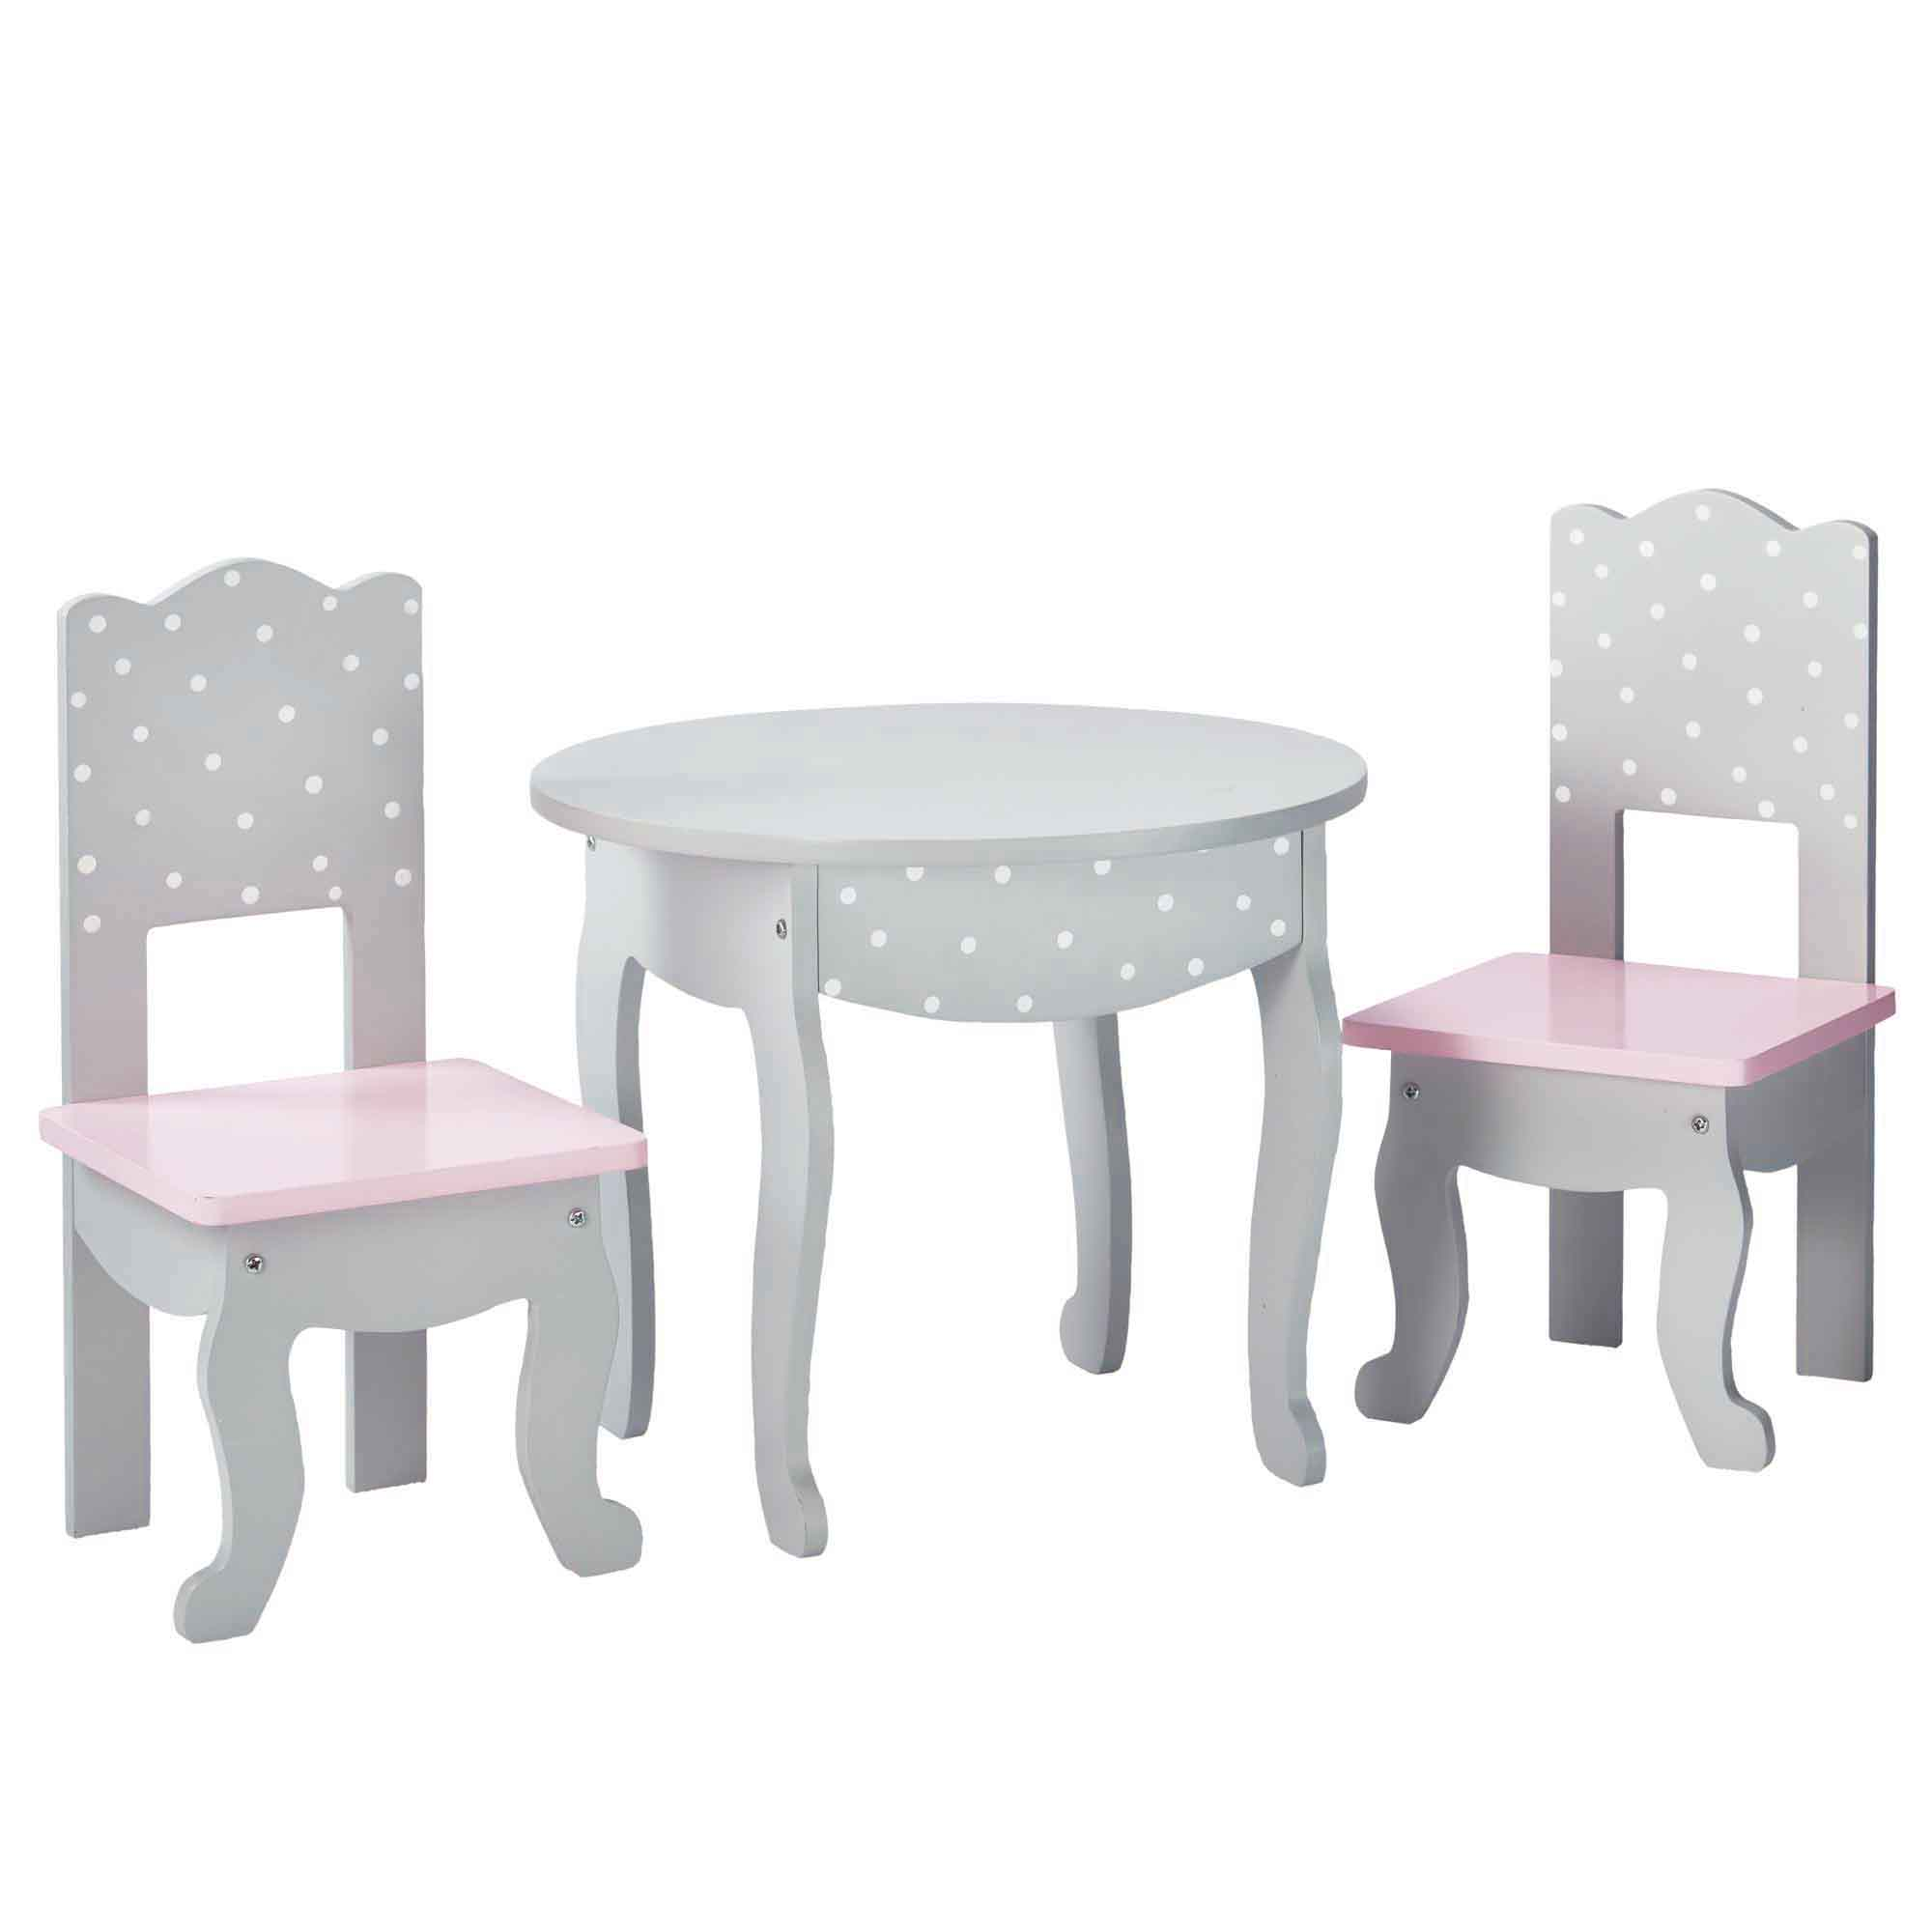 Olivia's little world ~ Polka Dot Princess 45cm Doll Furniture ~ Table & 2 chairs 3+